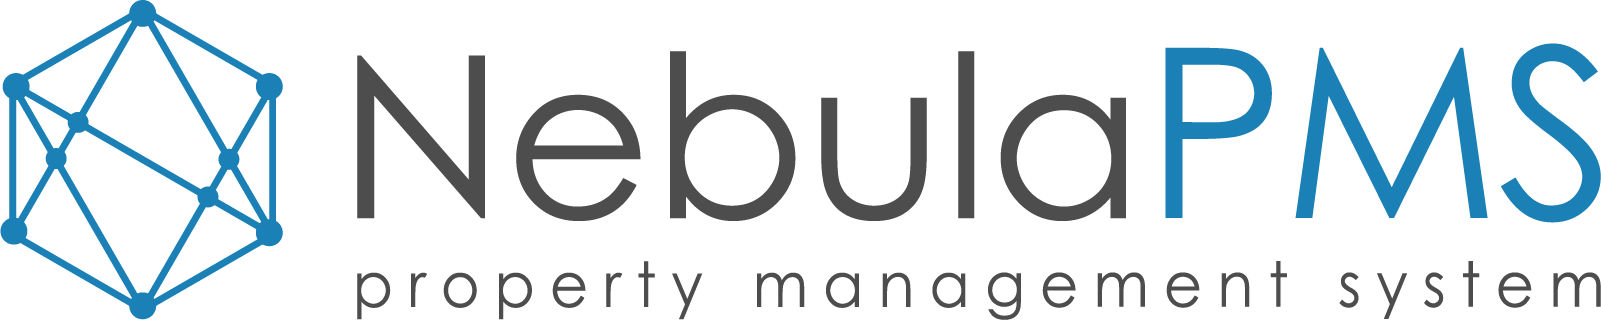 Property Management System for Hotels, Lodges and Chains